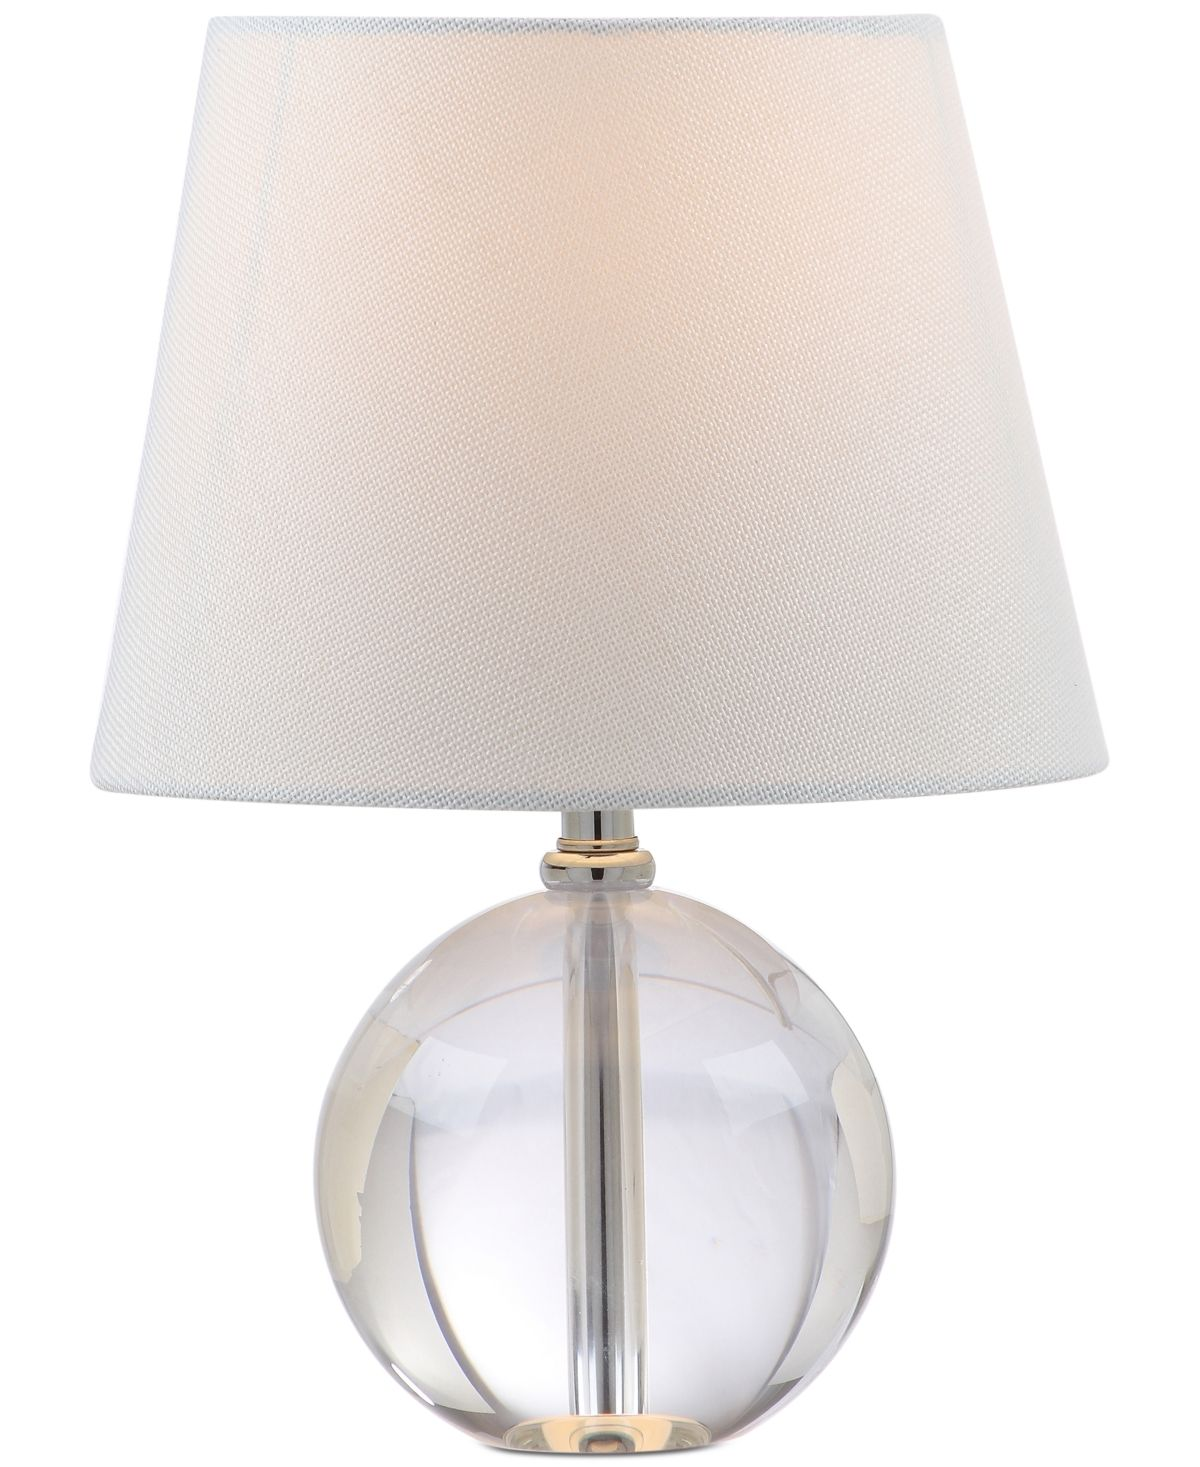 Safavieh Marble Table Lamp Amp Reviews